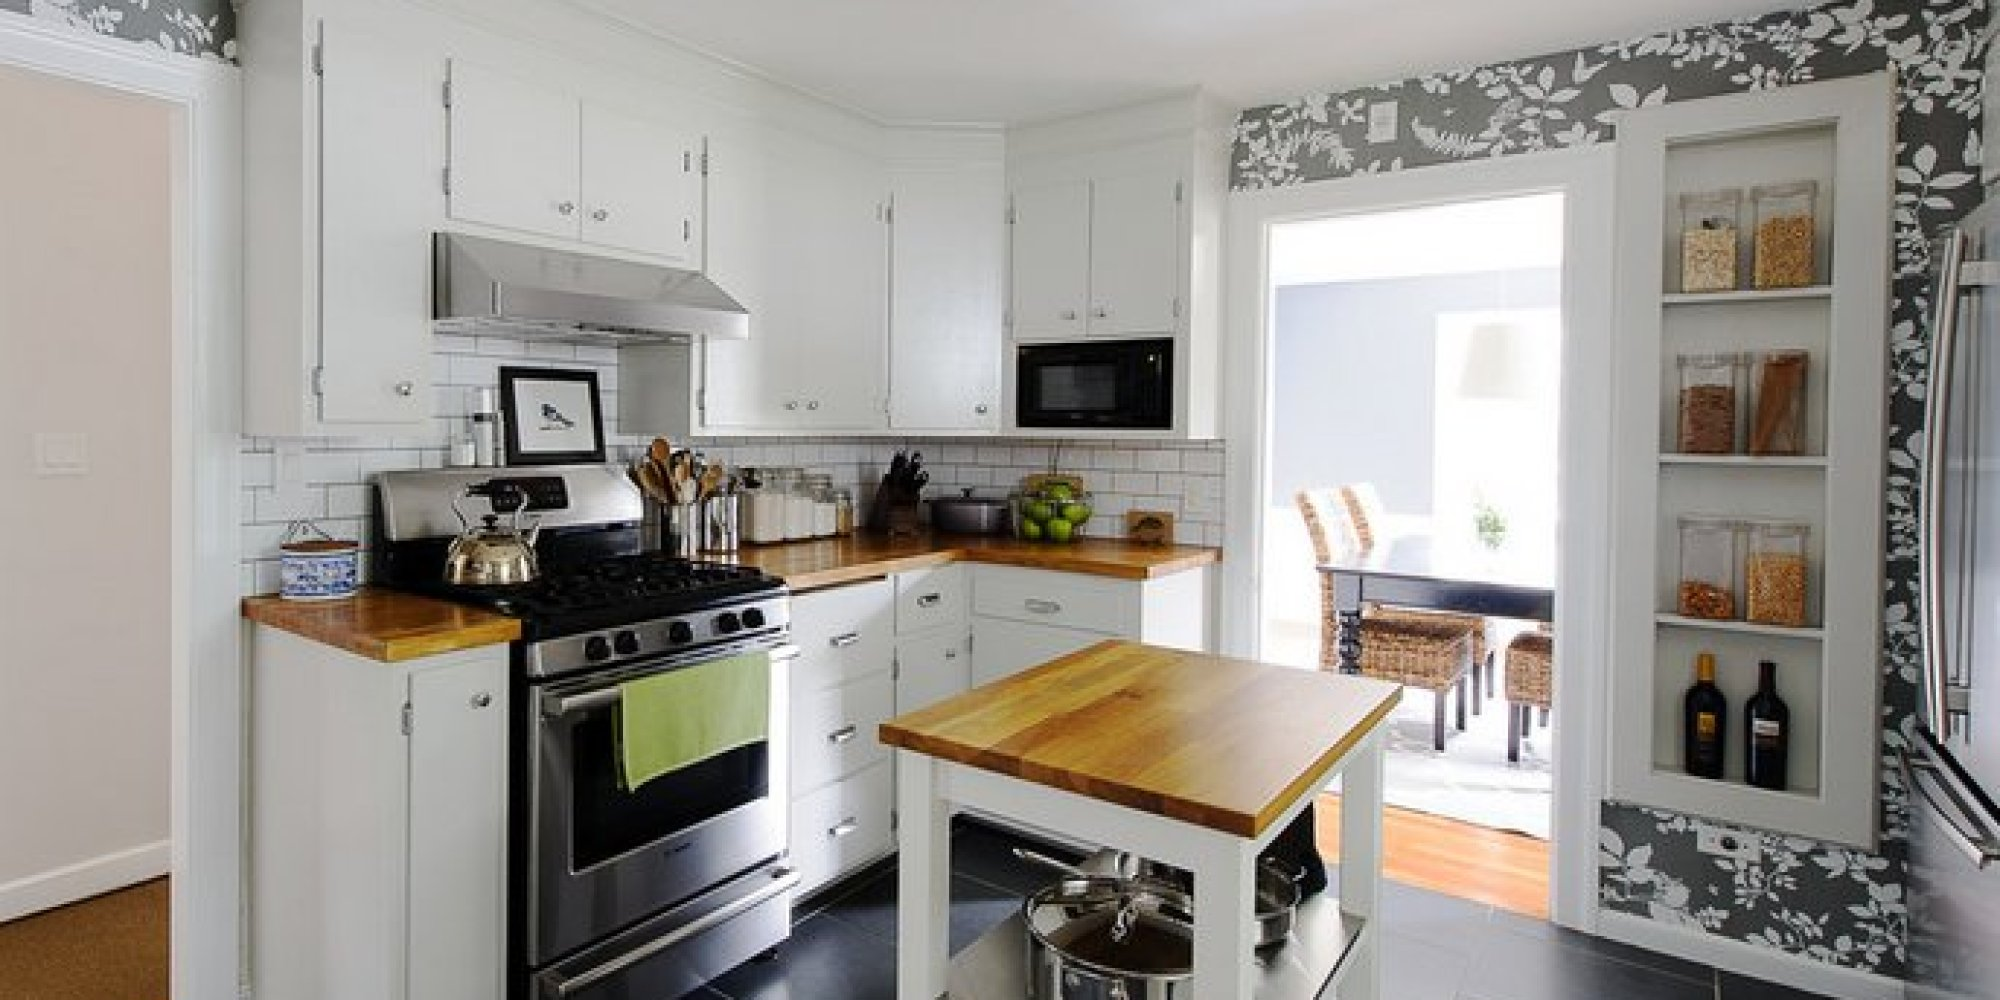 Kitchen Updates Simple Of Small Kitchen Update Ideas Image